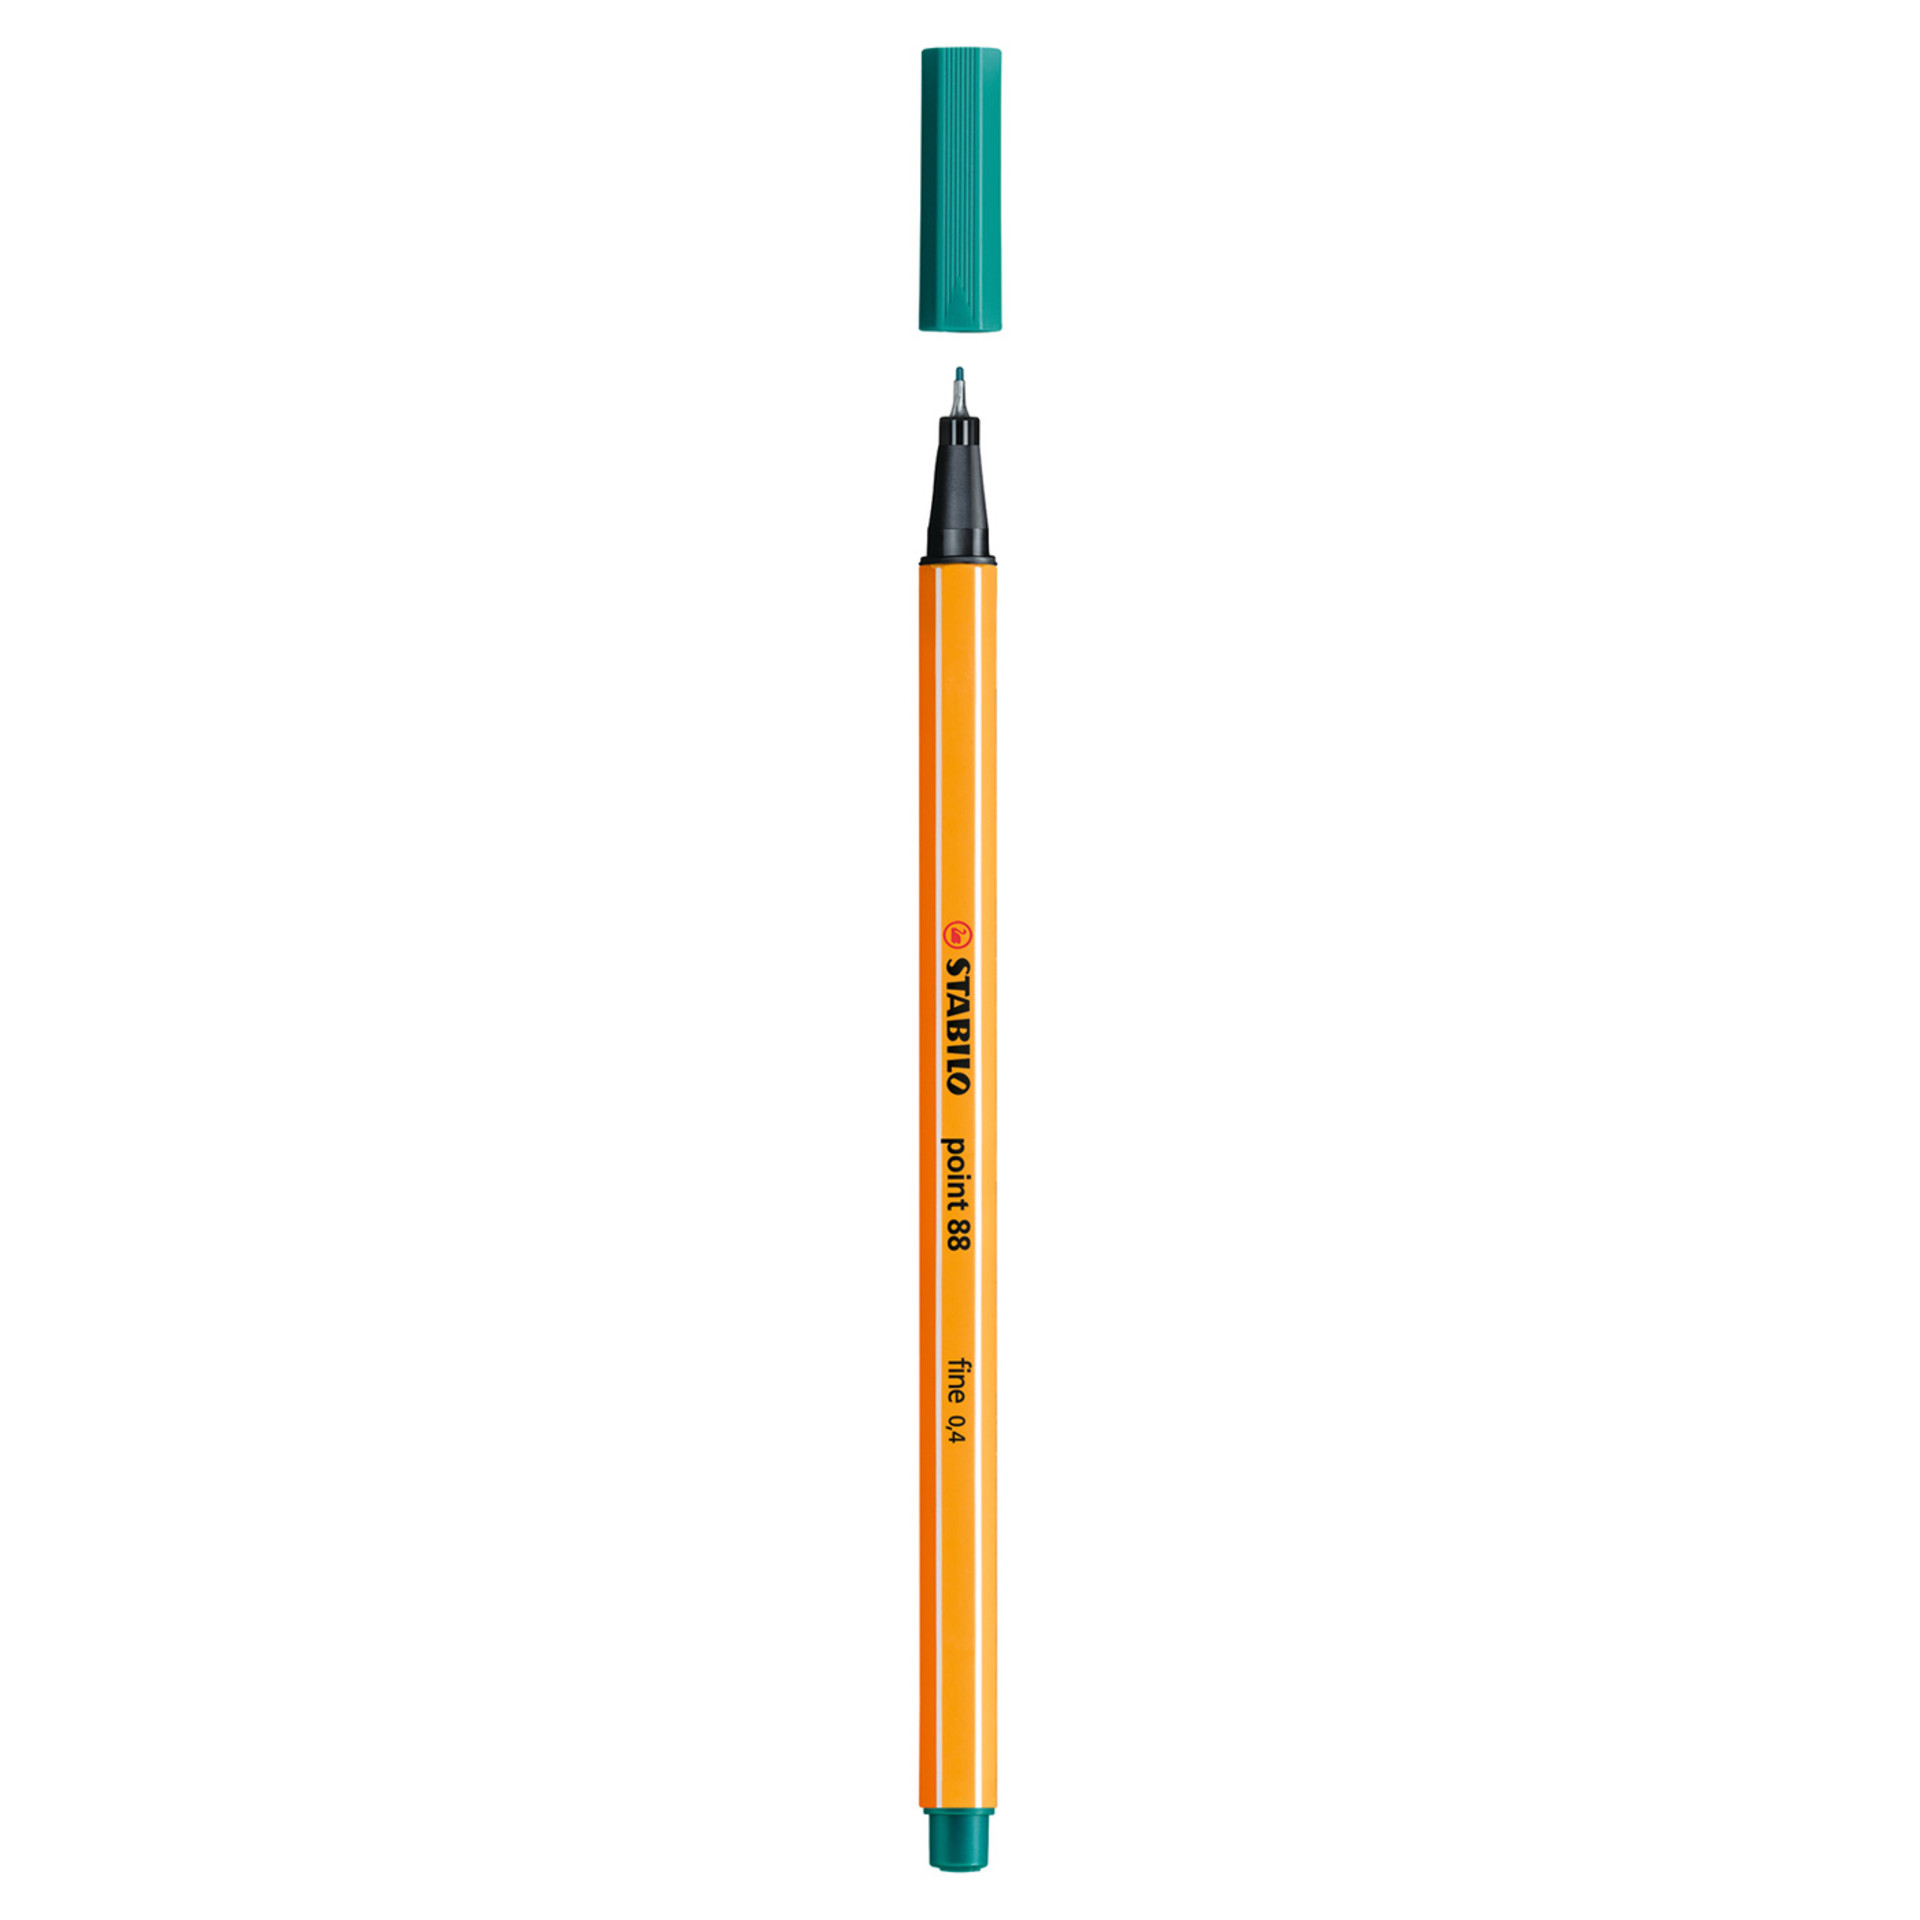 Stabilo Point 88 .4mm Fineliner Pen – Turquoise